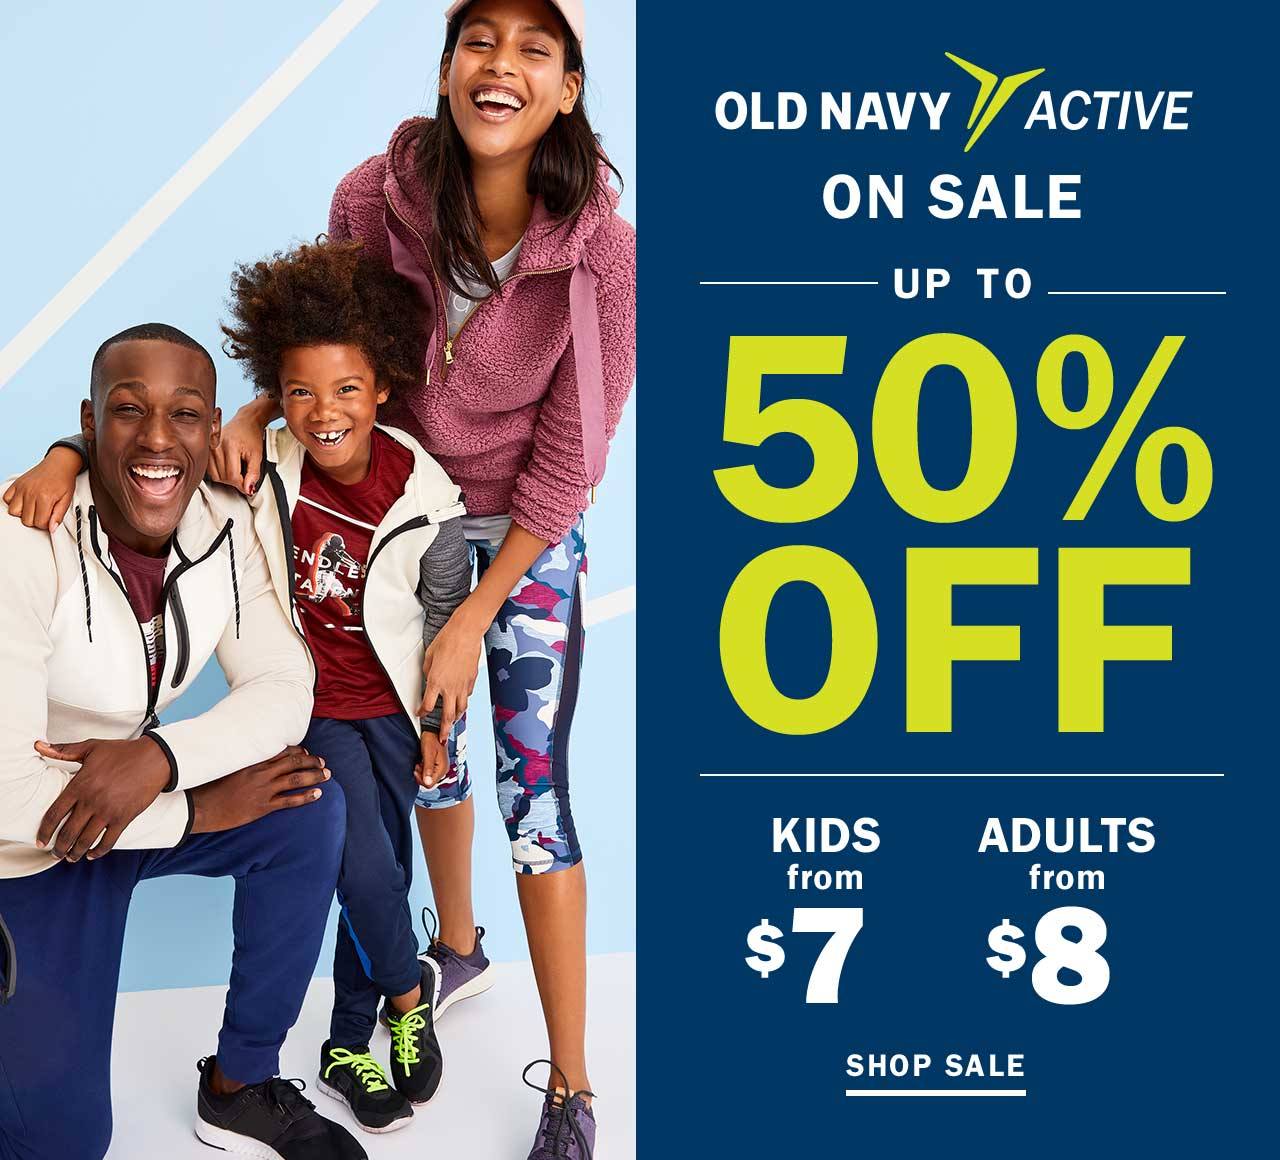 OLD NAVY ACTIVE ON SALE UP TO 50% OFF